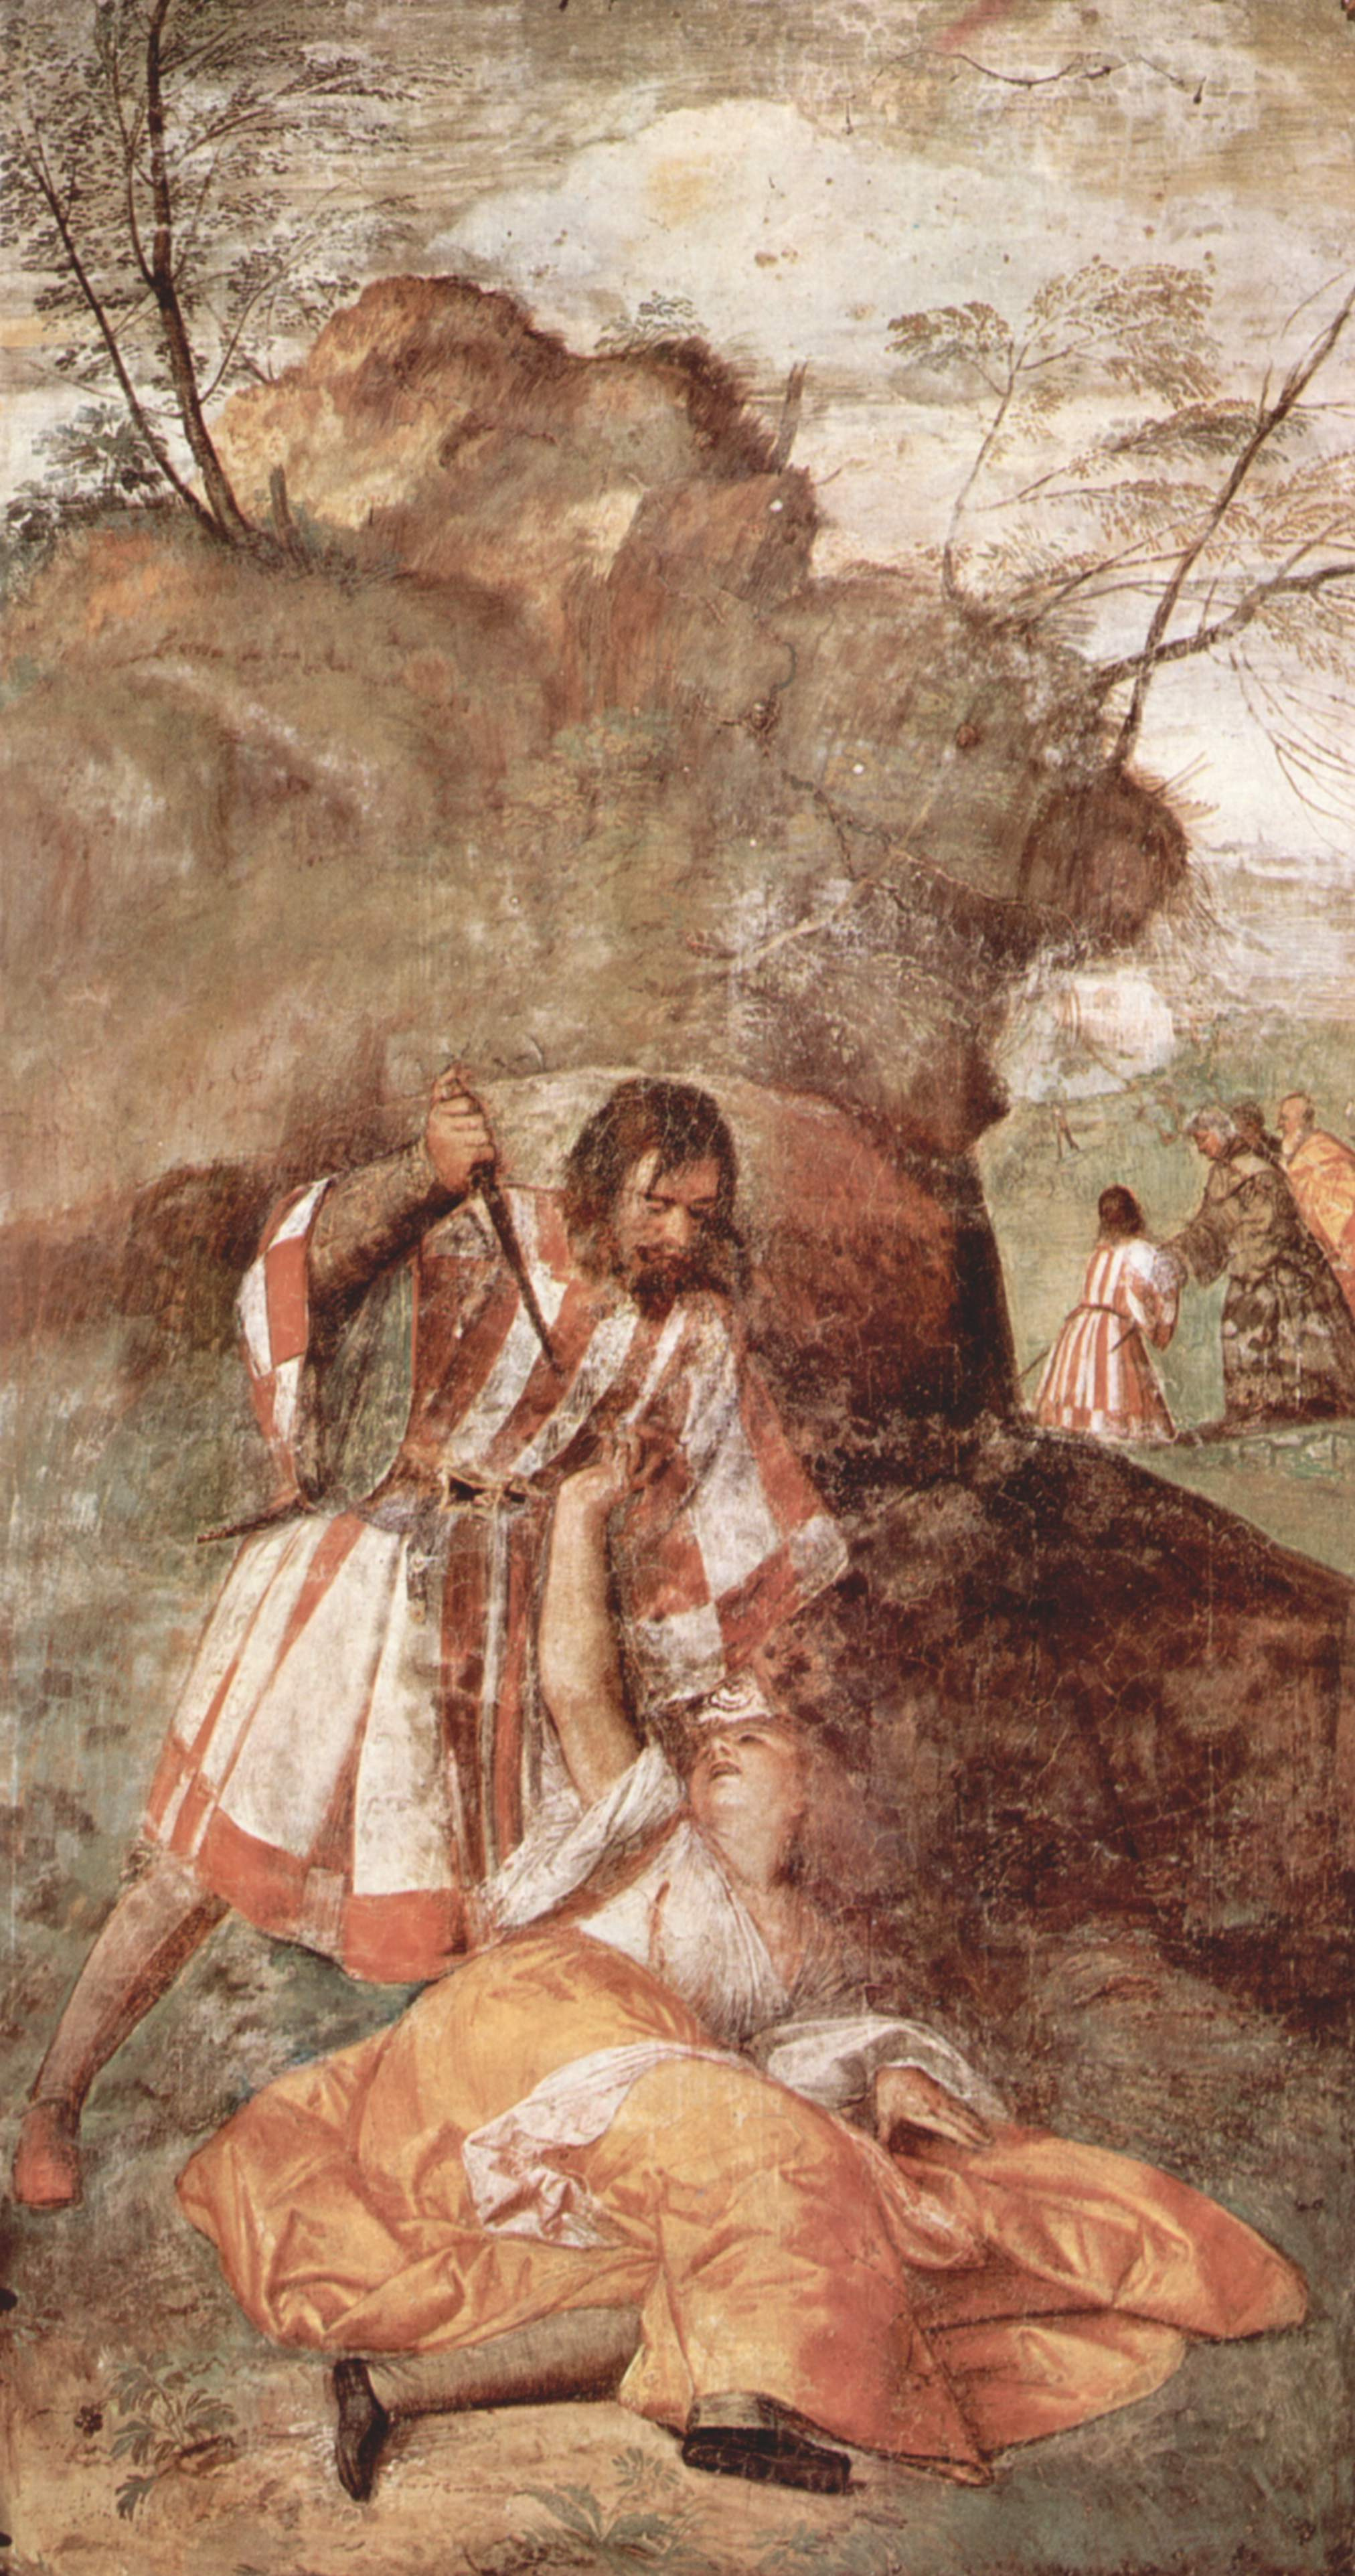 """Titian Vecelli. The frescoes on the story of """"the Wonderful works of St. Anthony of Padua"""". The miracle of the healing of women, wounded by a jealous husband"""